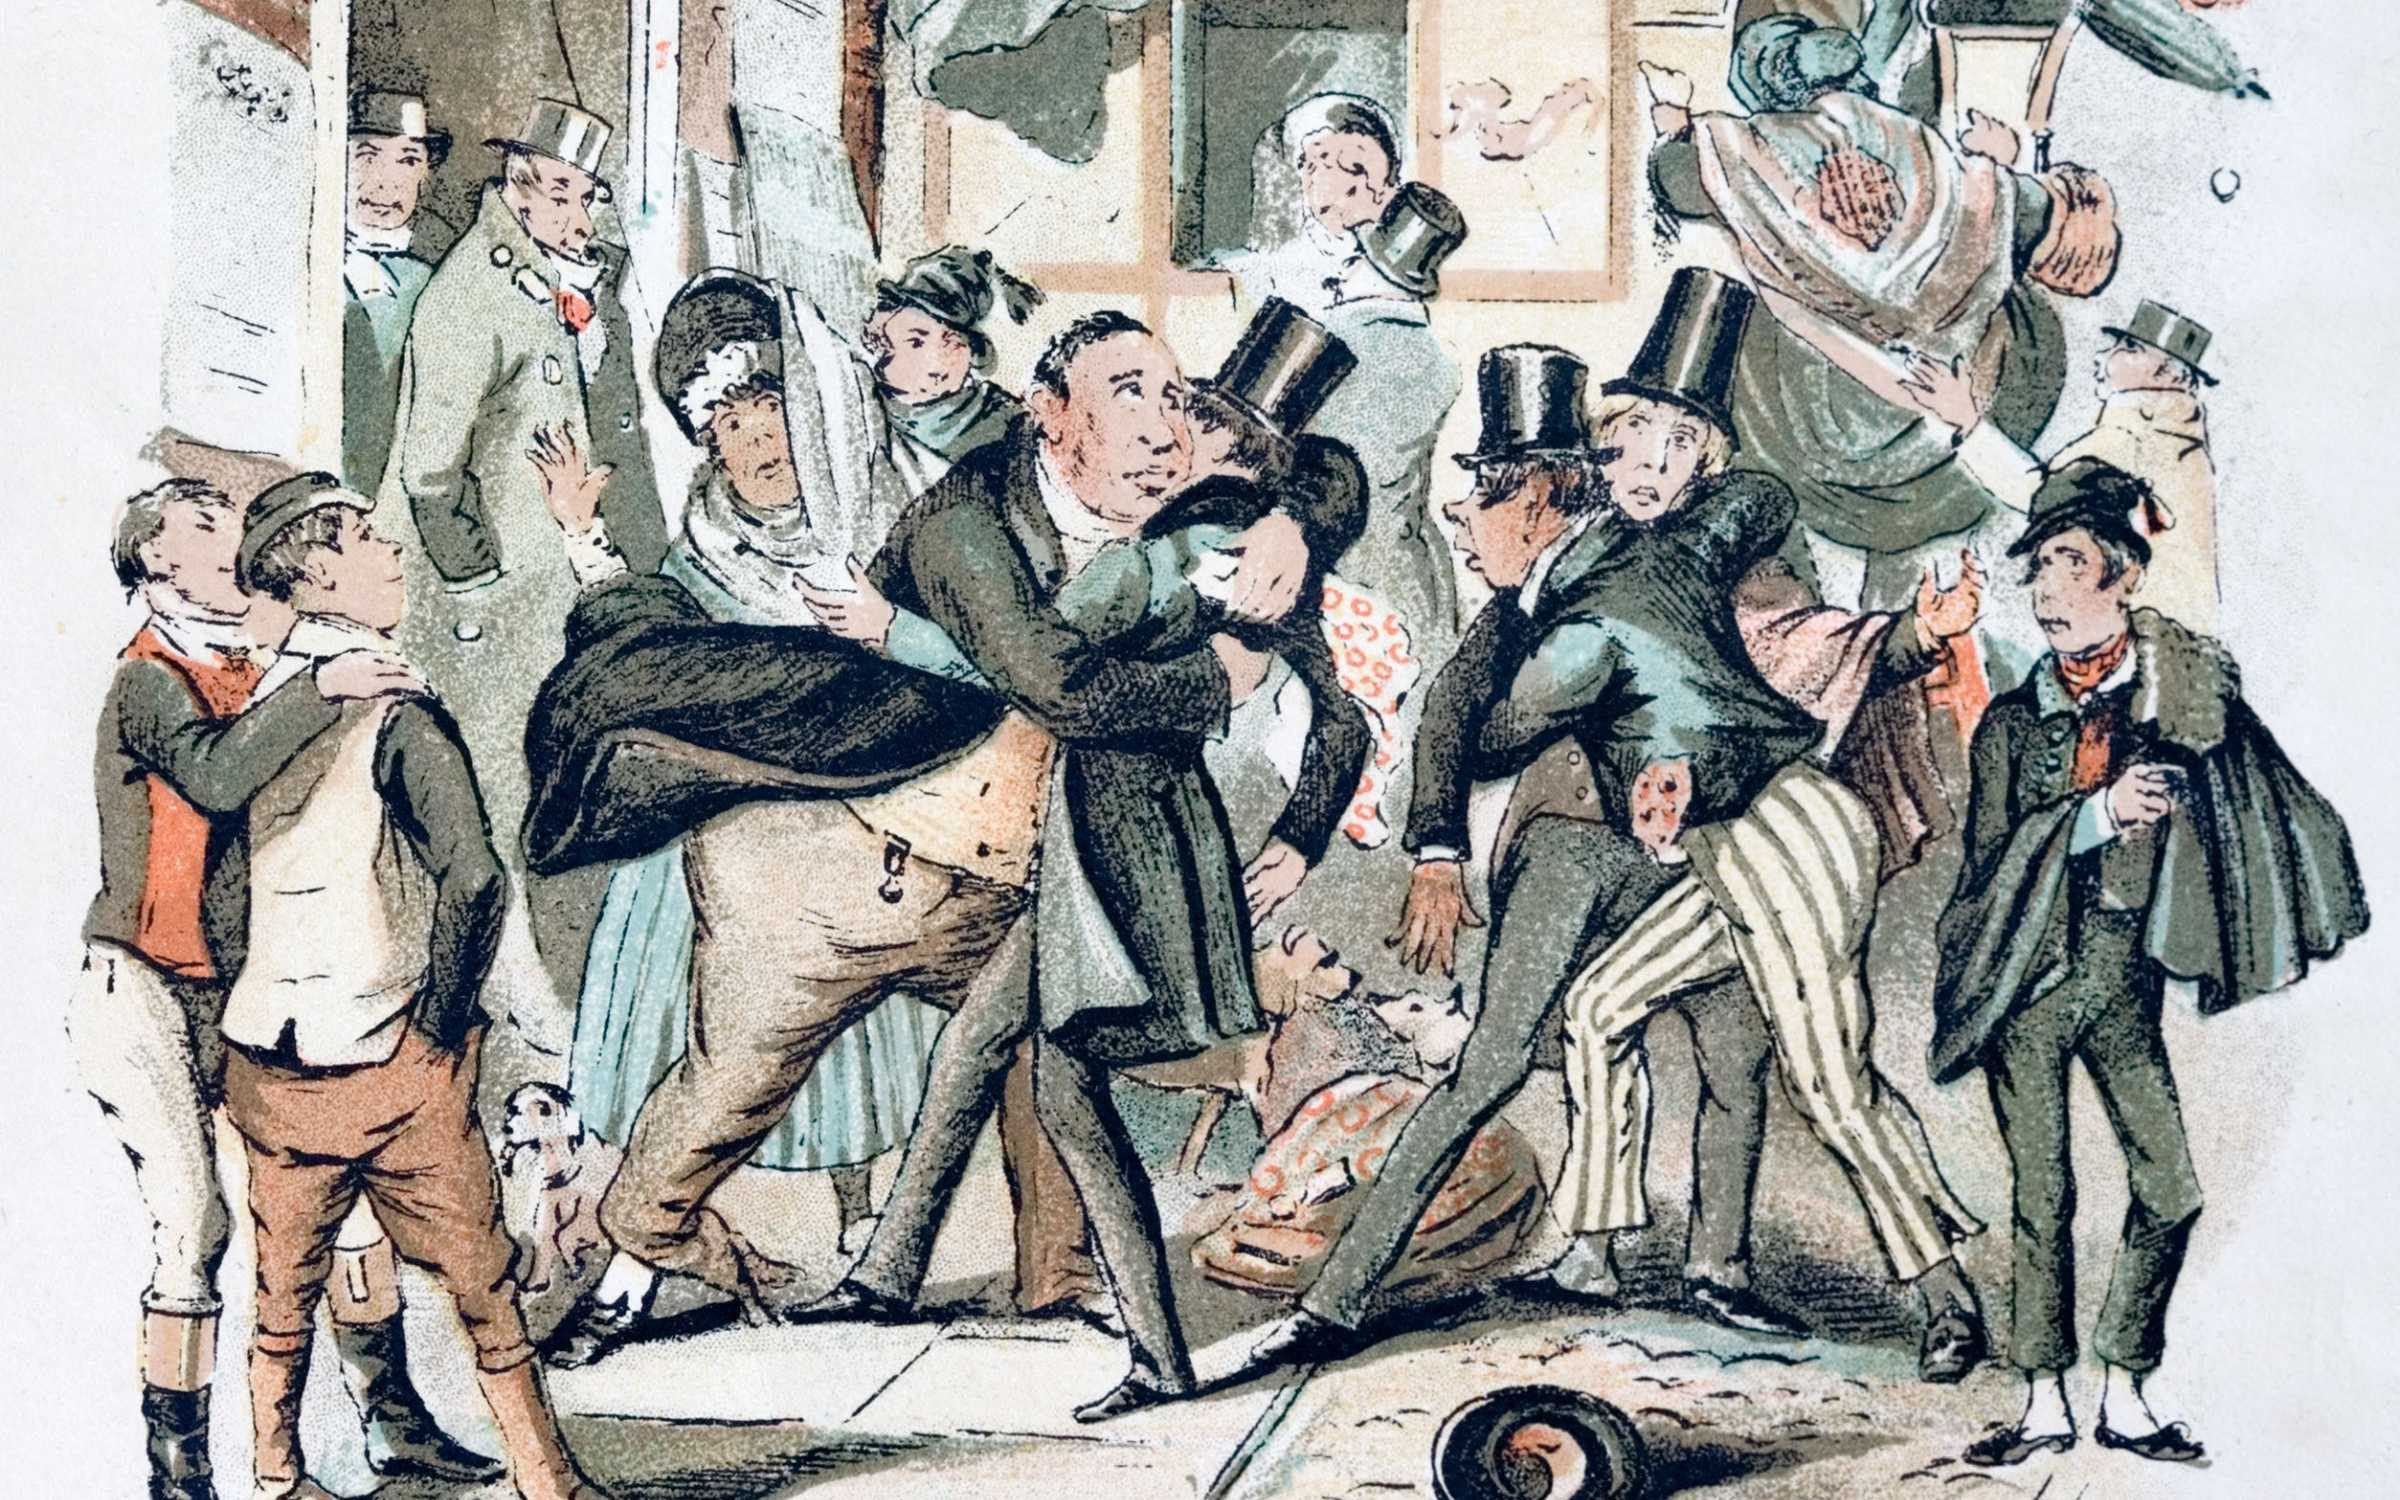 Civil disorder arising from animosity between university undergraduates and towns people (town v gown) as described in a Charles Dickens novel. Credit: Michael Nicholson/Corbis via Getty Images